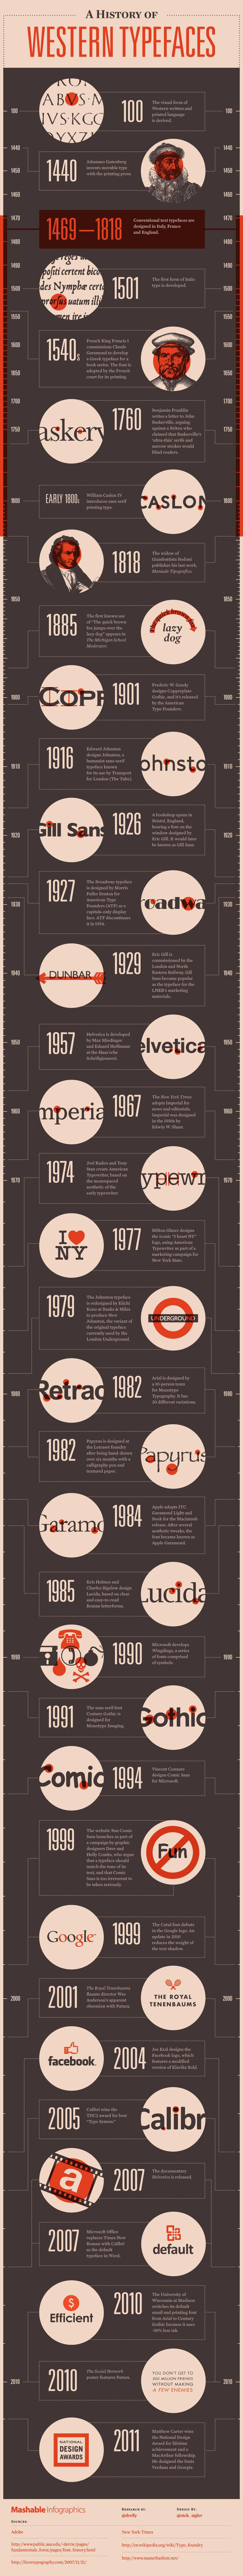 History of Typefaces